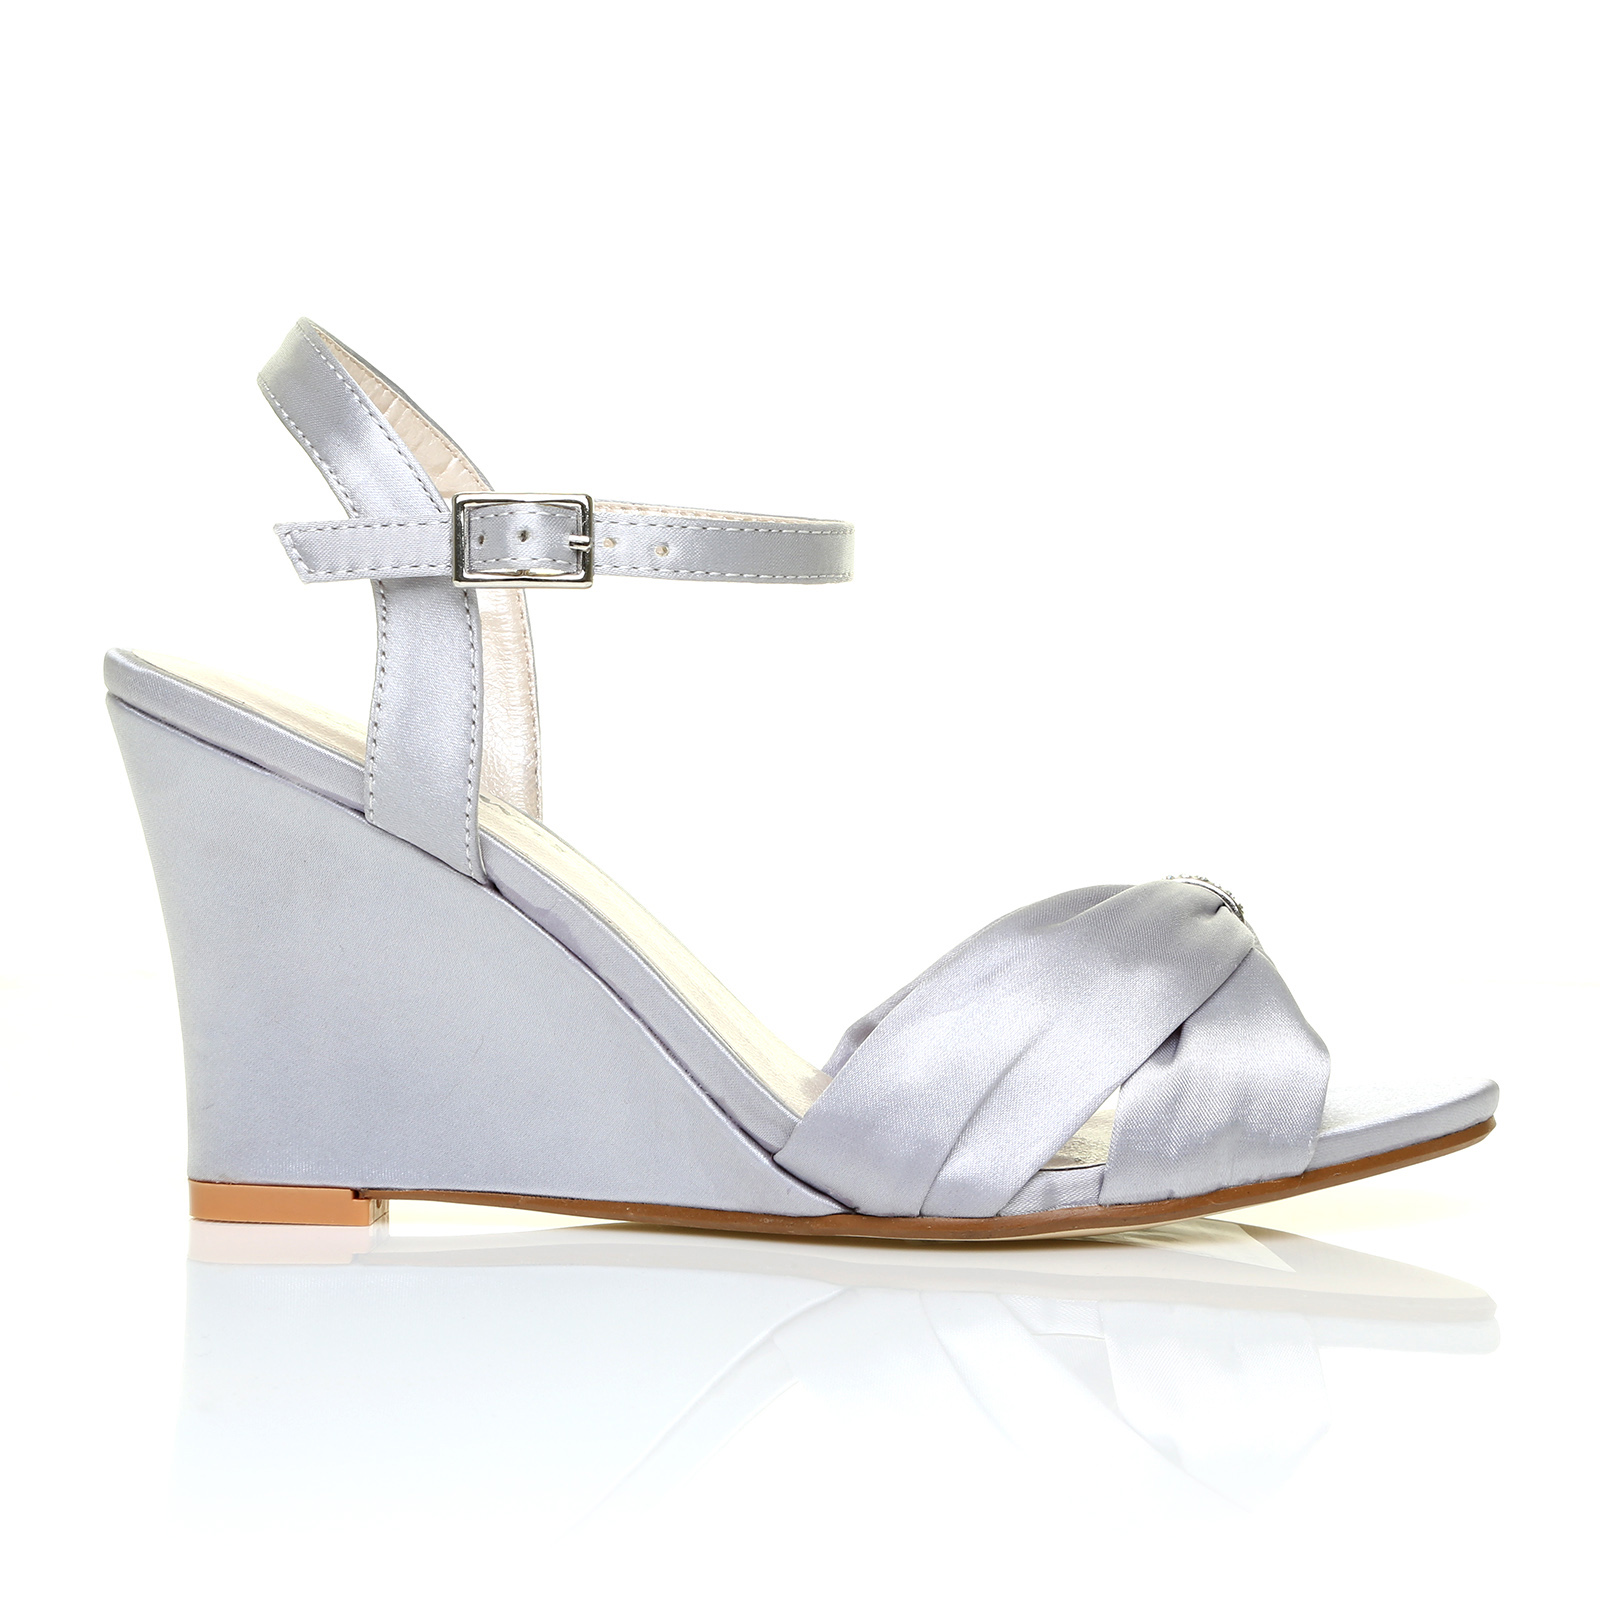 ANGEL Silver Satin Wedge High Heel Strappy Bridal Shoes